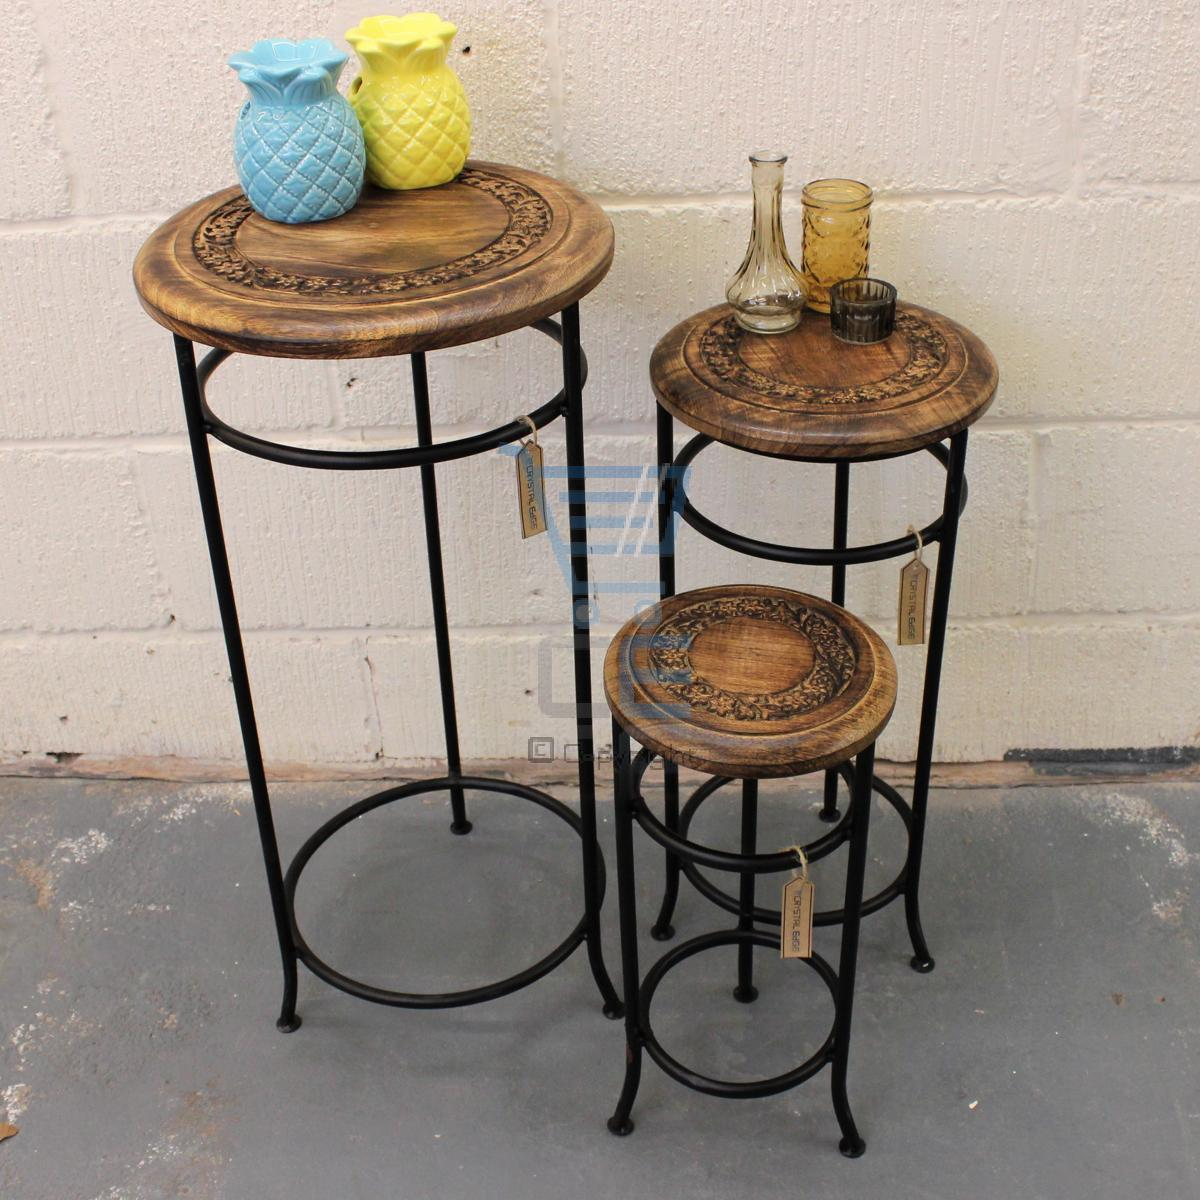 Wood And Metal Plant Stand Set Of 3 Occasional Tables Mango Wood And Iron Plant Stand